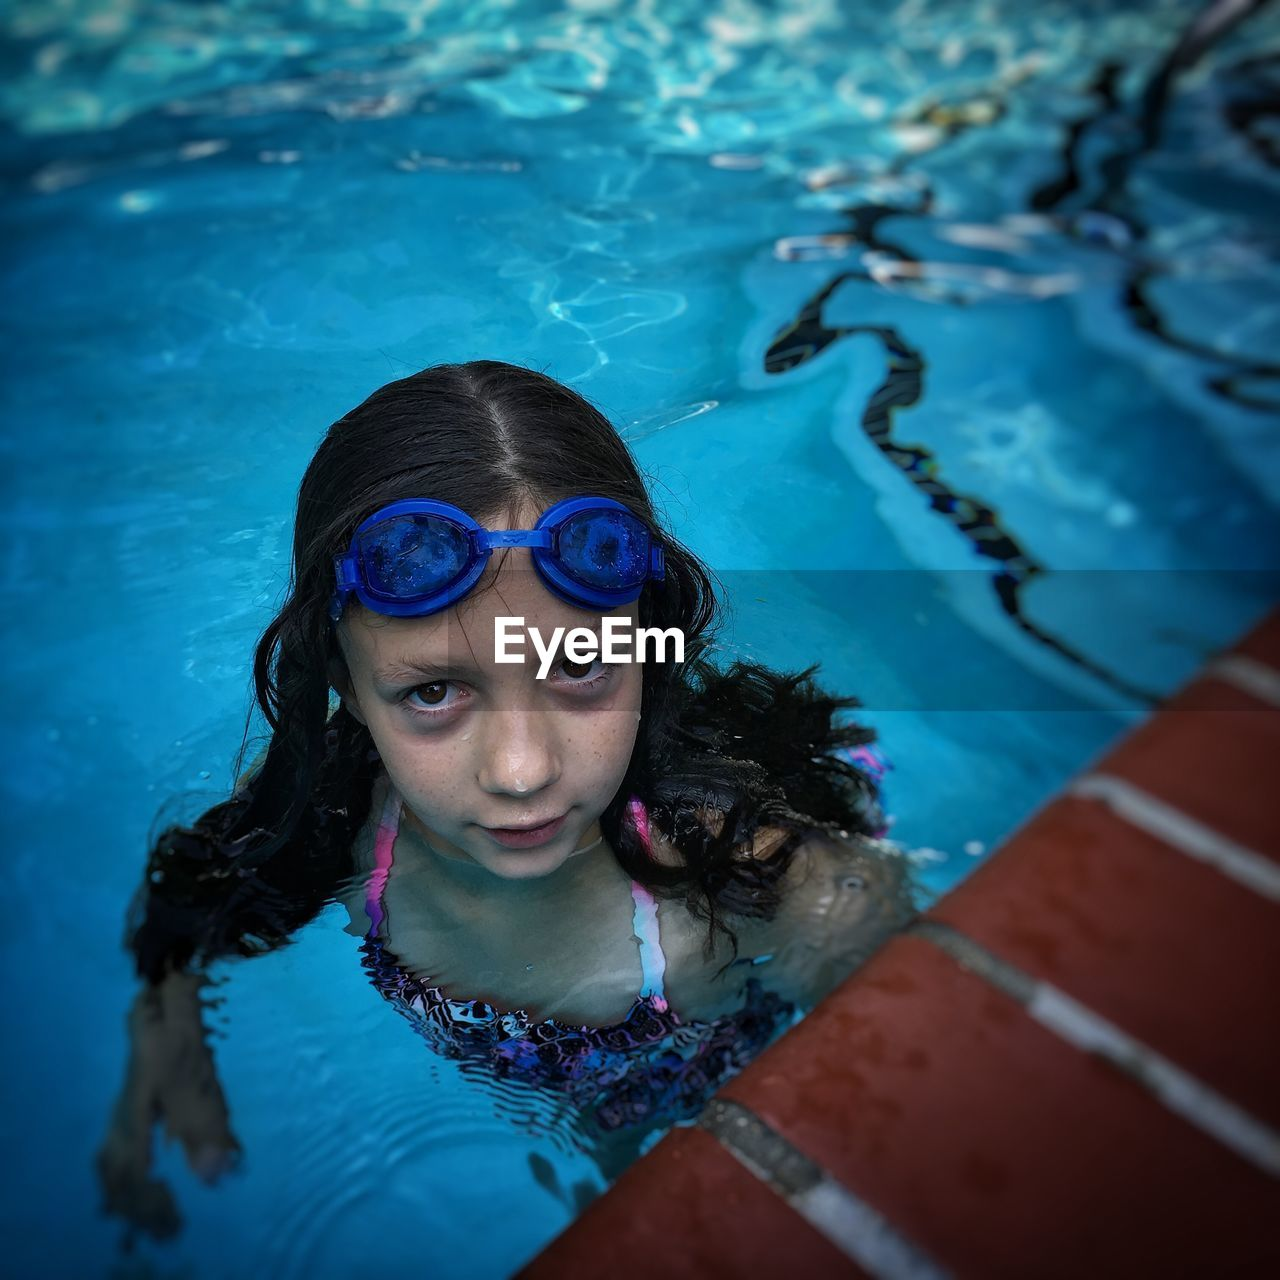 child, water, childhood, one person, real people, girls, portrait, swimming pool, females, pool, looking at camera, lifestyles, leisure activity, swimming, swimwear, women, front view, innocence, outdoors, hairstyle, eyewear